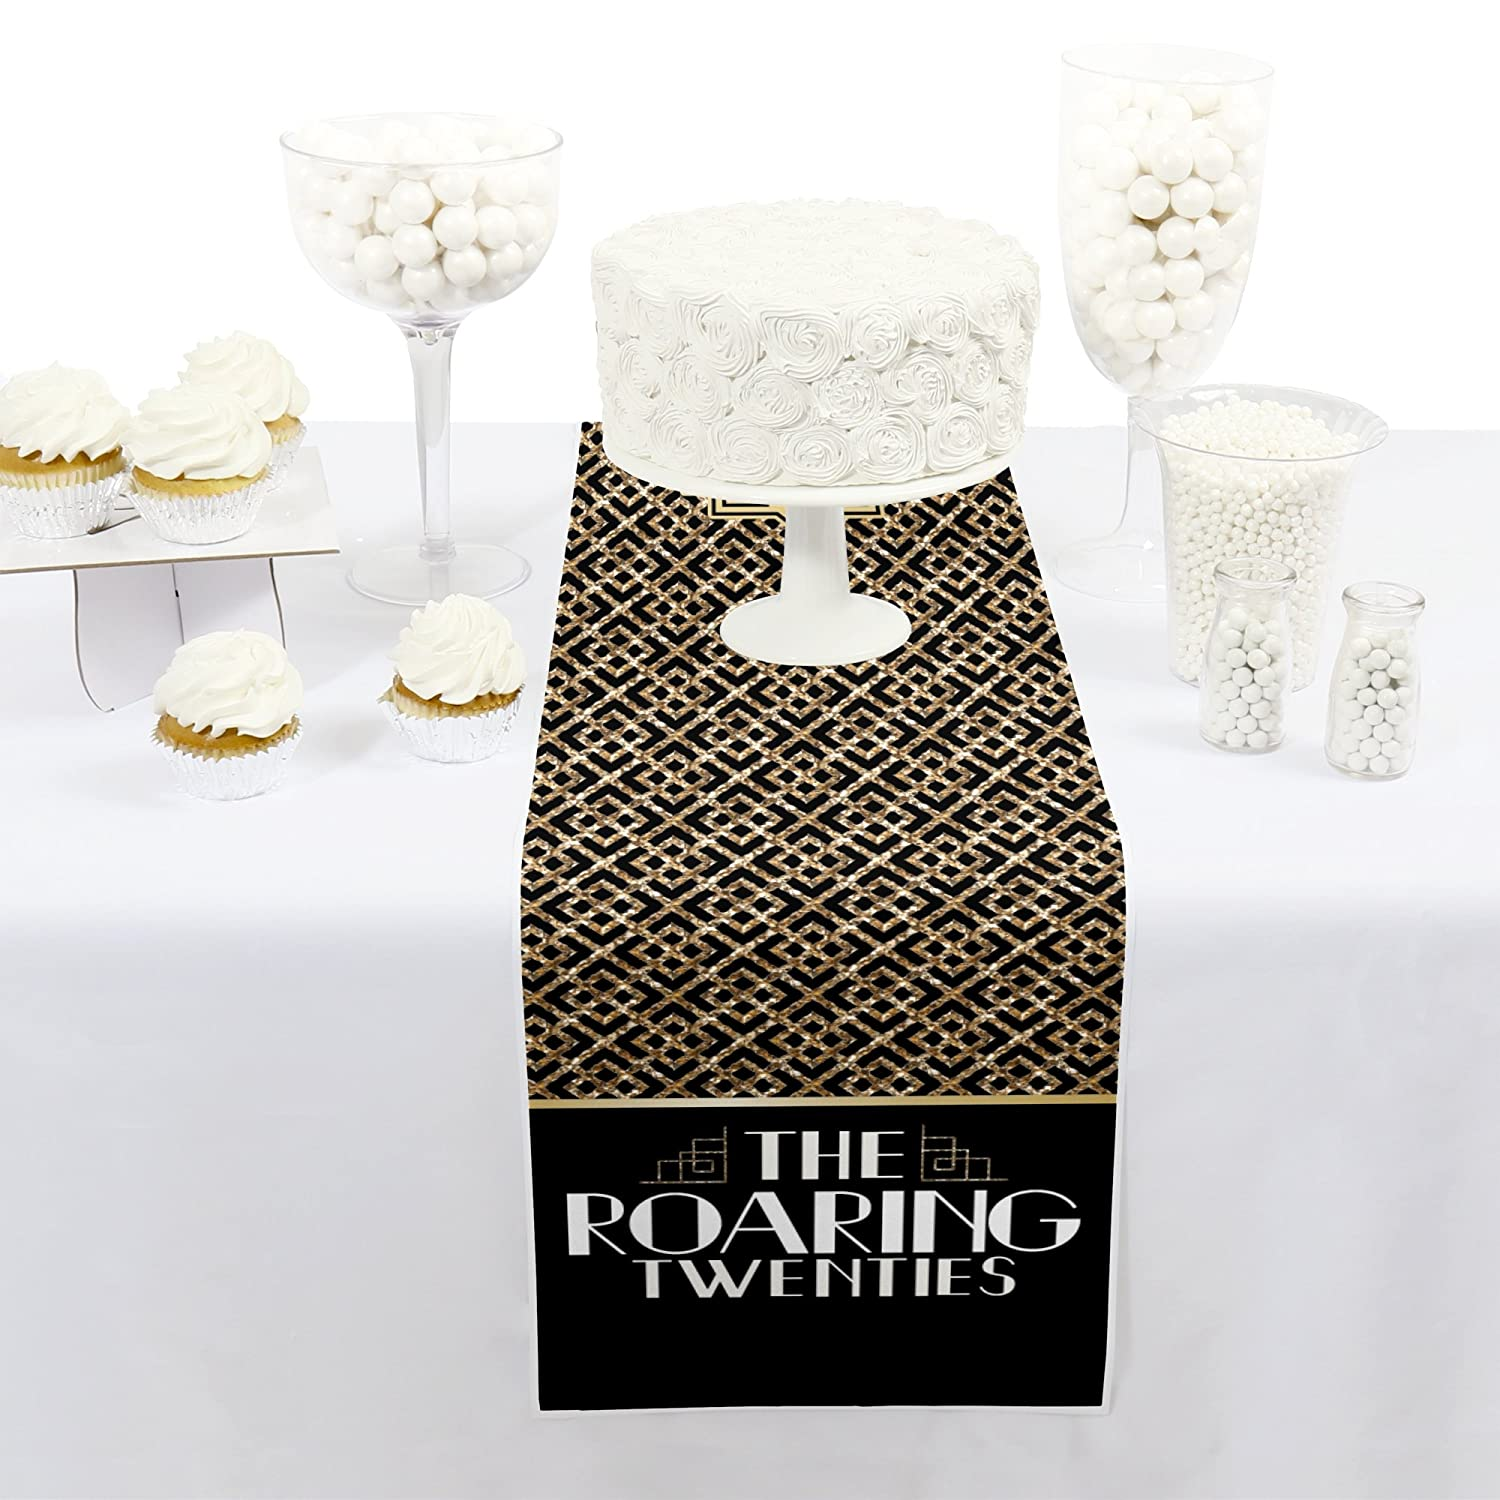 Petite 1920s Art Deco Jazz Party Paper Table Runner 12 x 60 inches Big Dot of Happiness Roaring 20s 2020 New Year/'s Eve Party